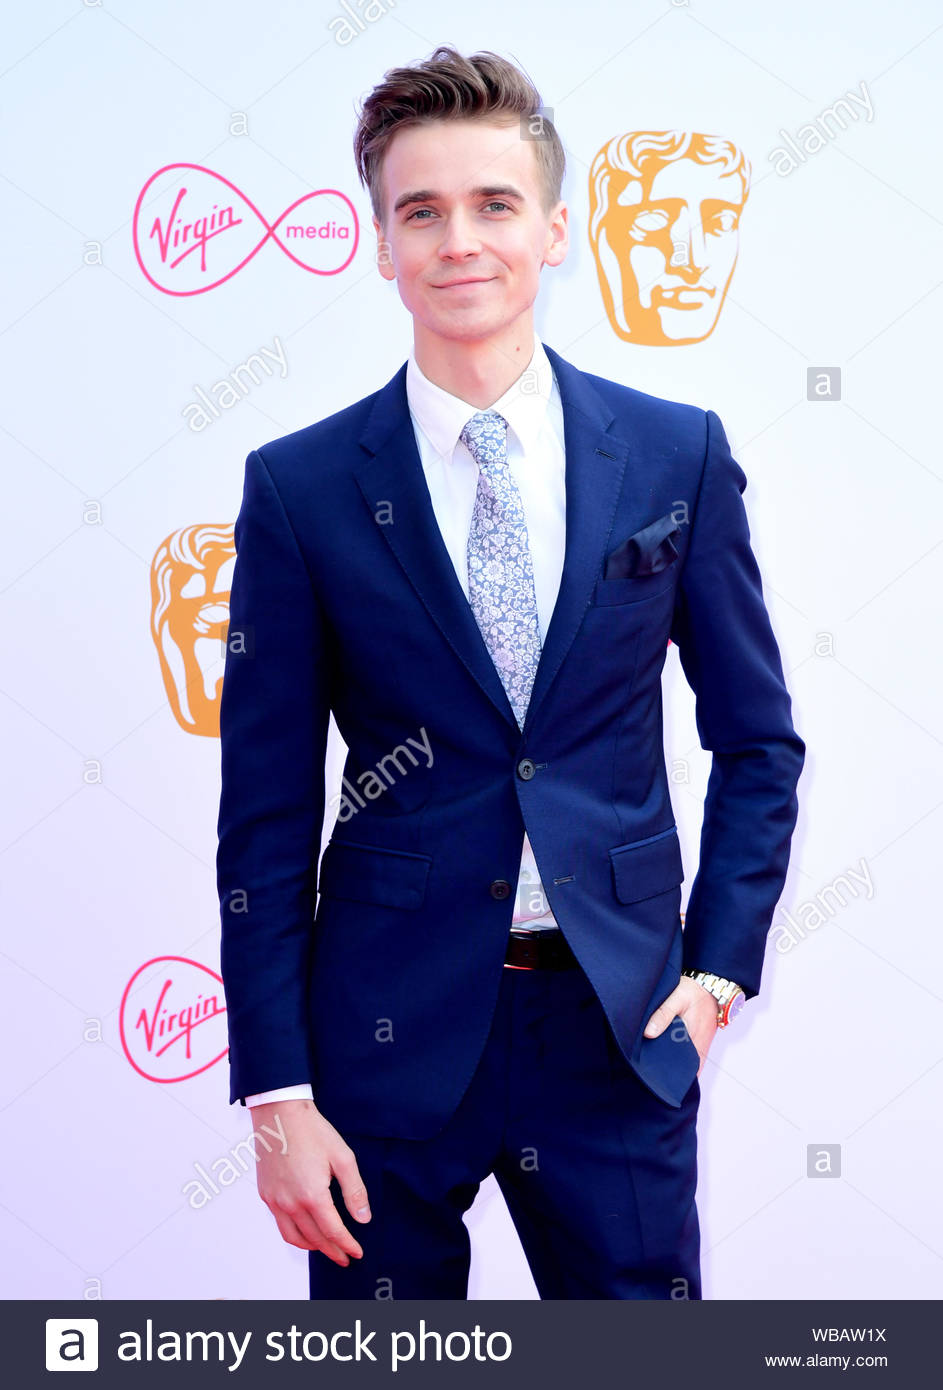 File Photo Dated 12 5 2019 Of Youtube Star Joe Sugg Who Will Host The Strictly Come Dancing Podcast When It Returns Alongside The New Series Stock Photo Alamy In a struggle between what's right and wrong, zoë and joe sugg have to face the decision of their life's. https www alamy com file photo dated 1252019 of youtube star joe sugg who will host the strictly come dancing podcast when it returns alongside the new series image265155910 html